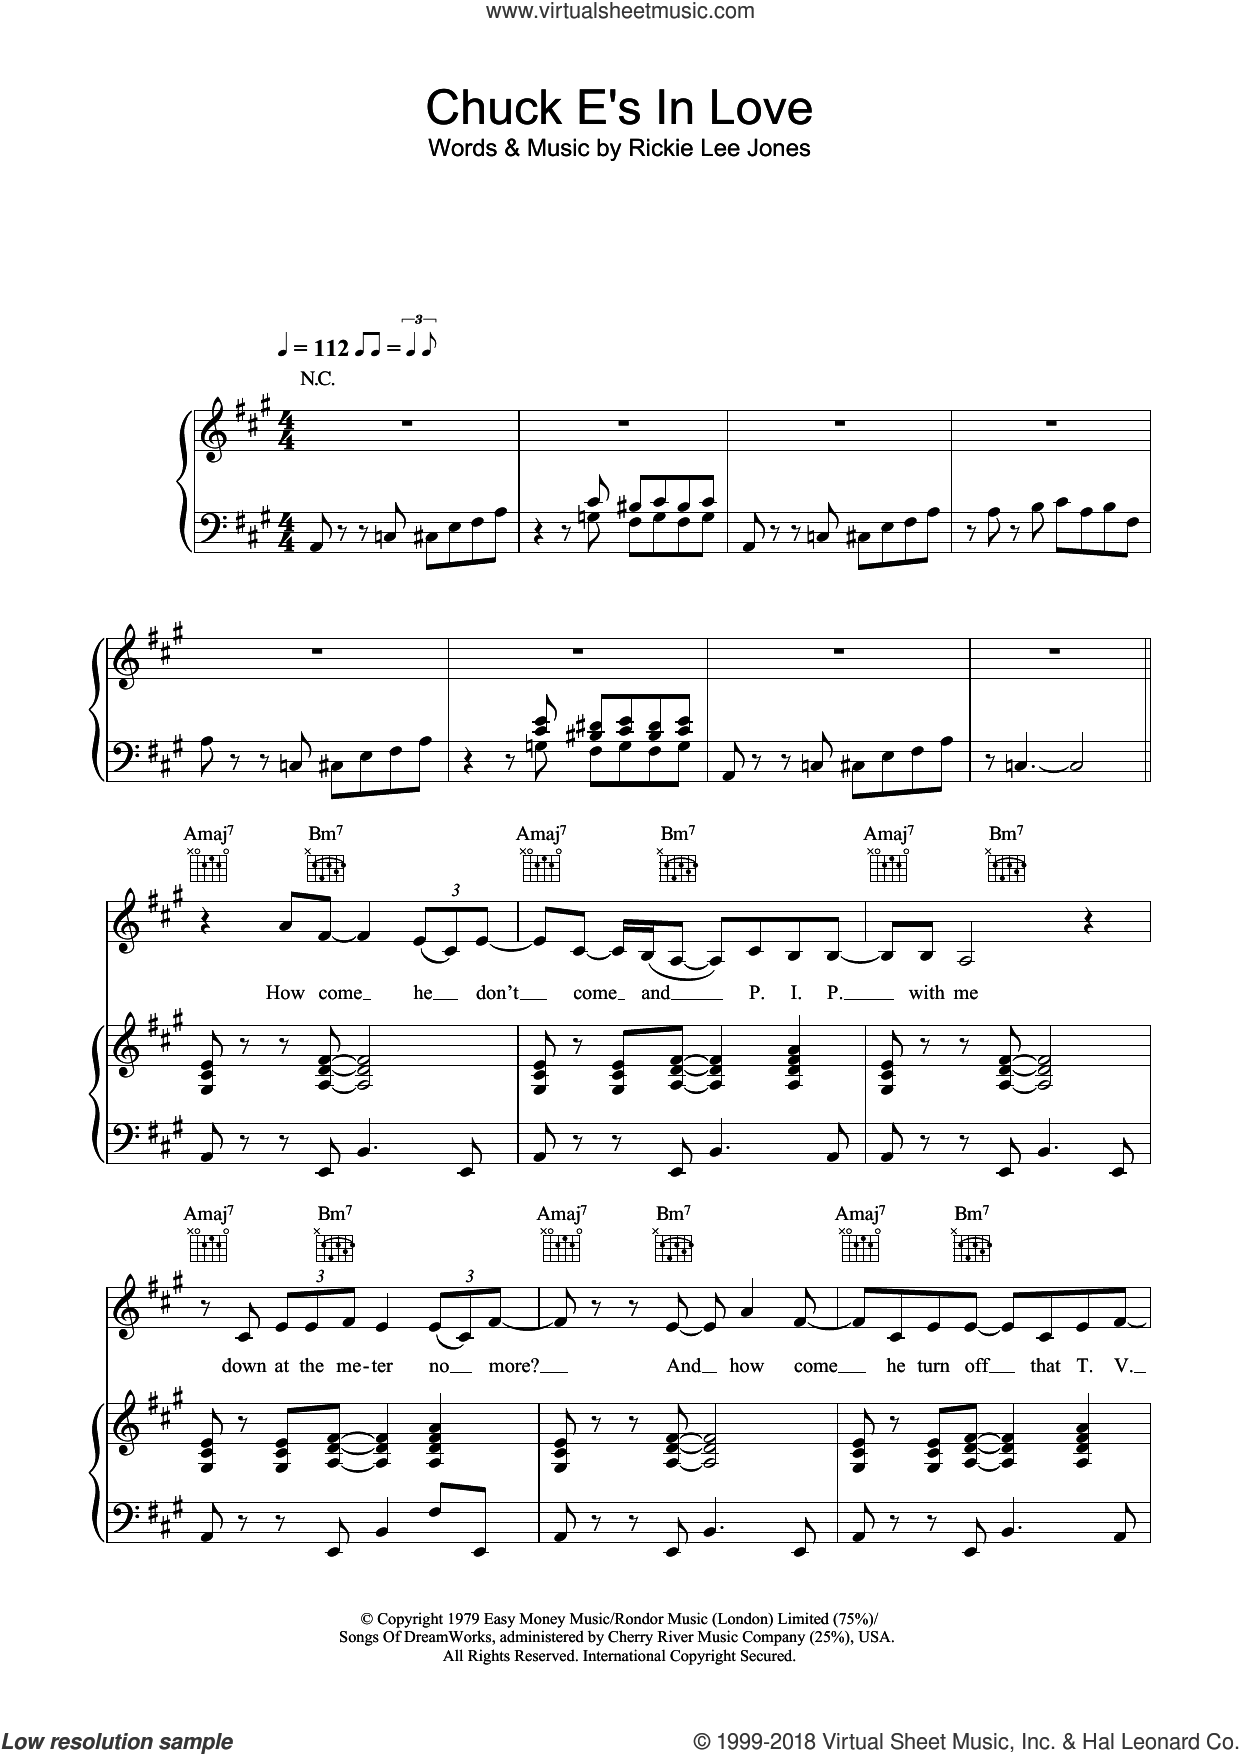 Chuck E's In Love sheet music for voice, piano or guitar by Rickie Lee Jones, intermediate skill level